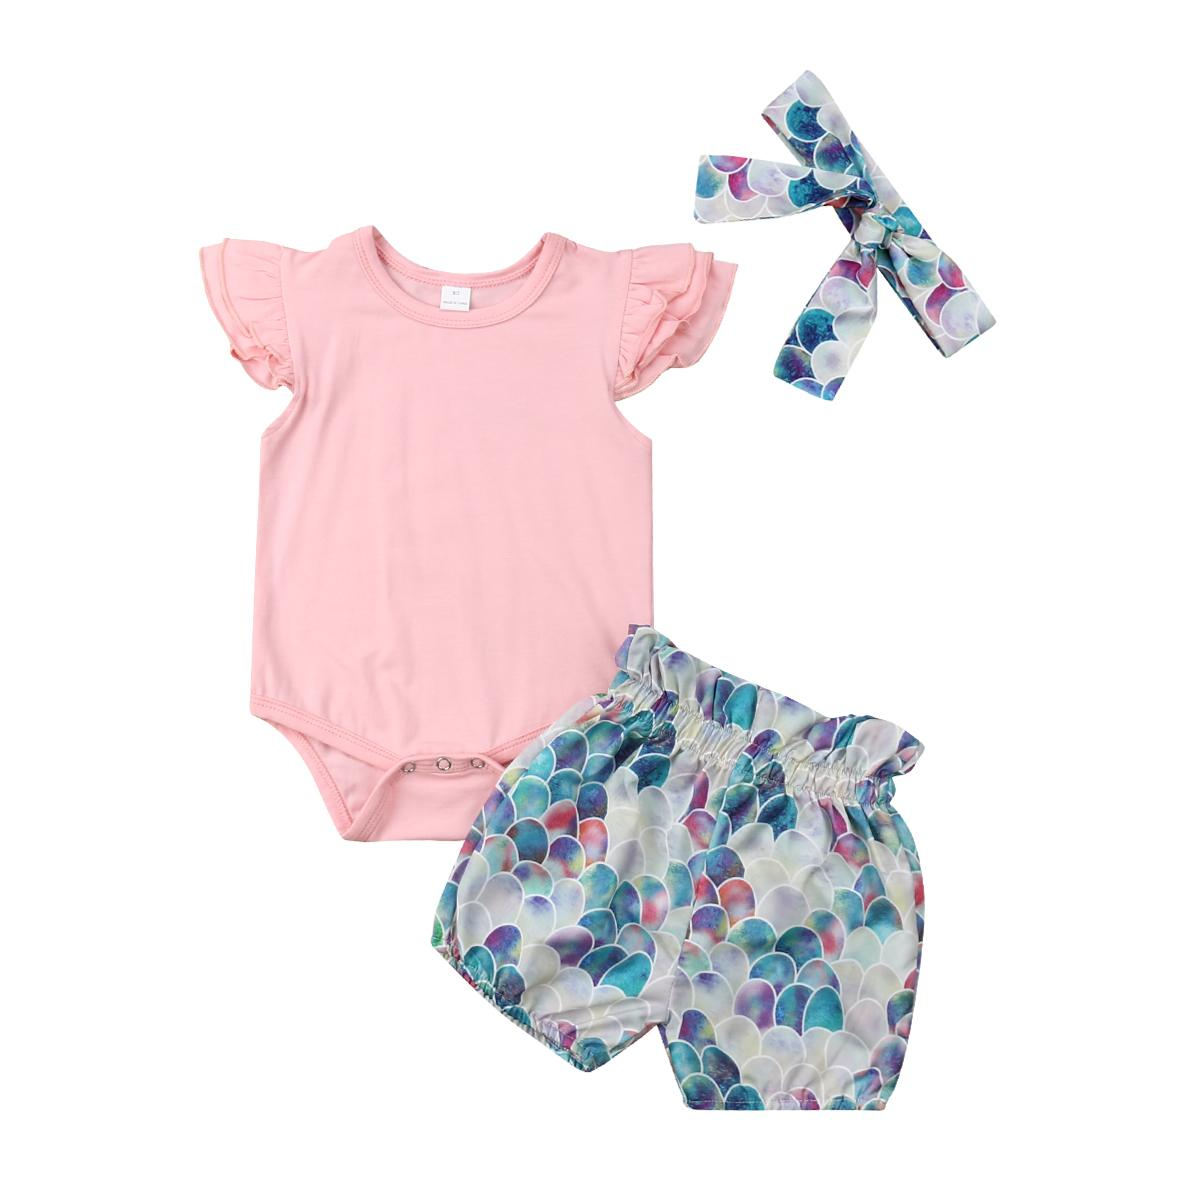 305bed59e2ab Newborn Baby Girl Summer Outfits Clothes Tops Sleeveless Solid ...